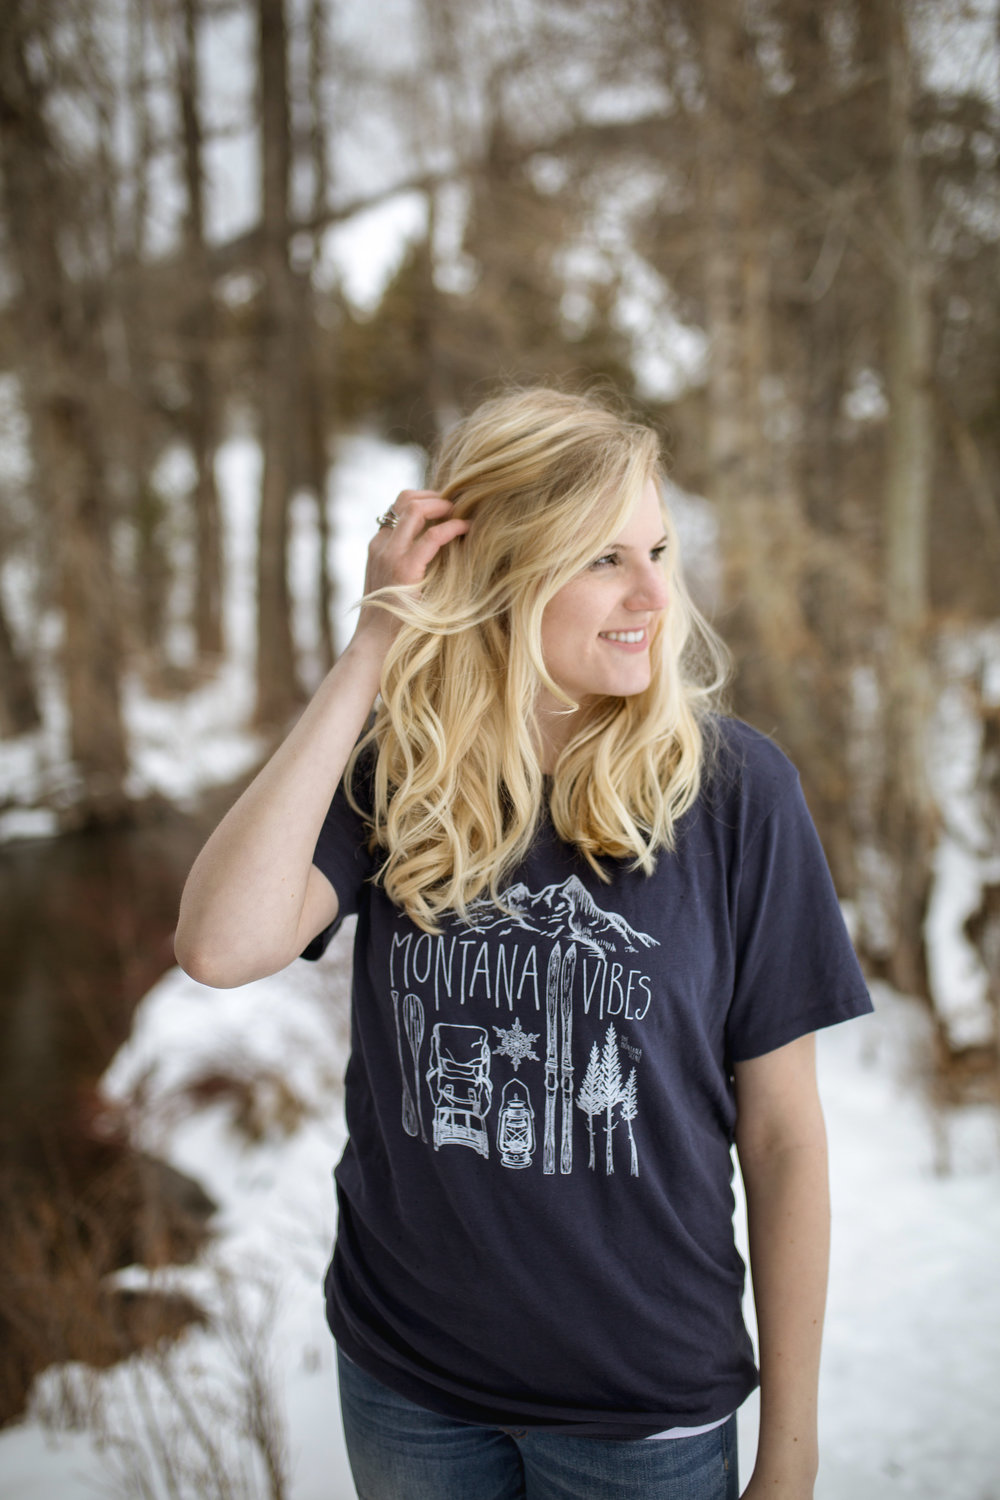 "The Montana Scene ""Montana Vibes"" tee shirt by blogger Bri Sul. Camping, skiing, hiking, outdoors,"